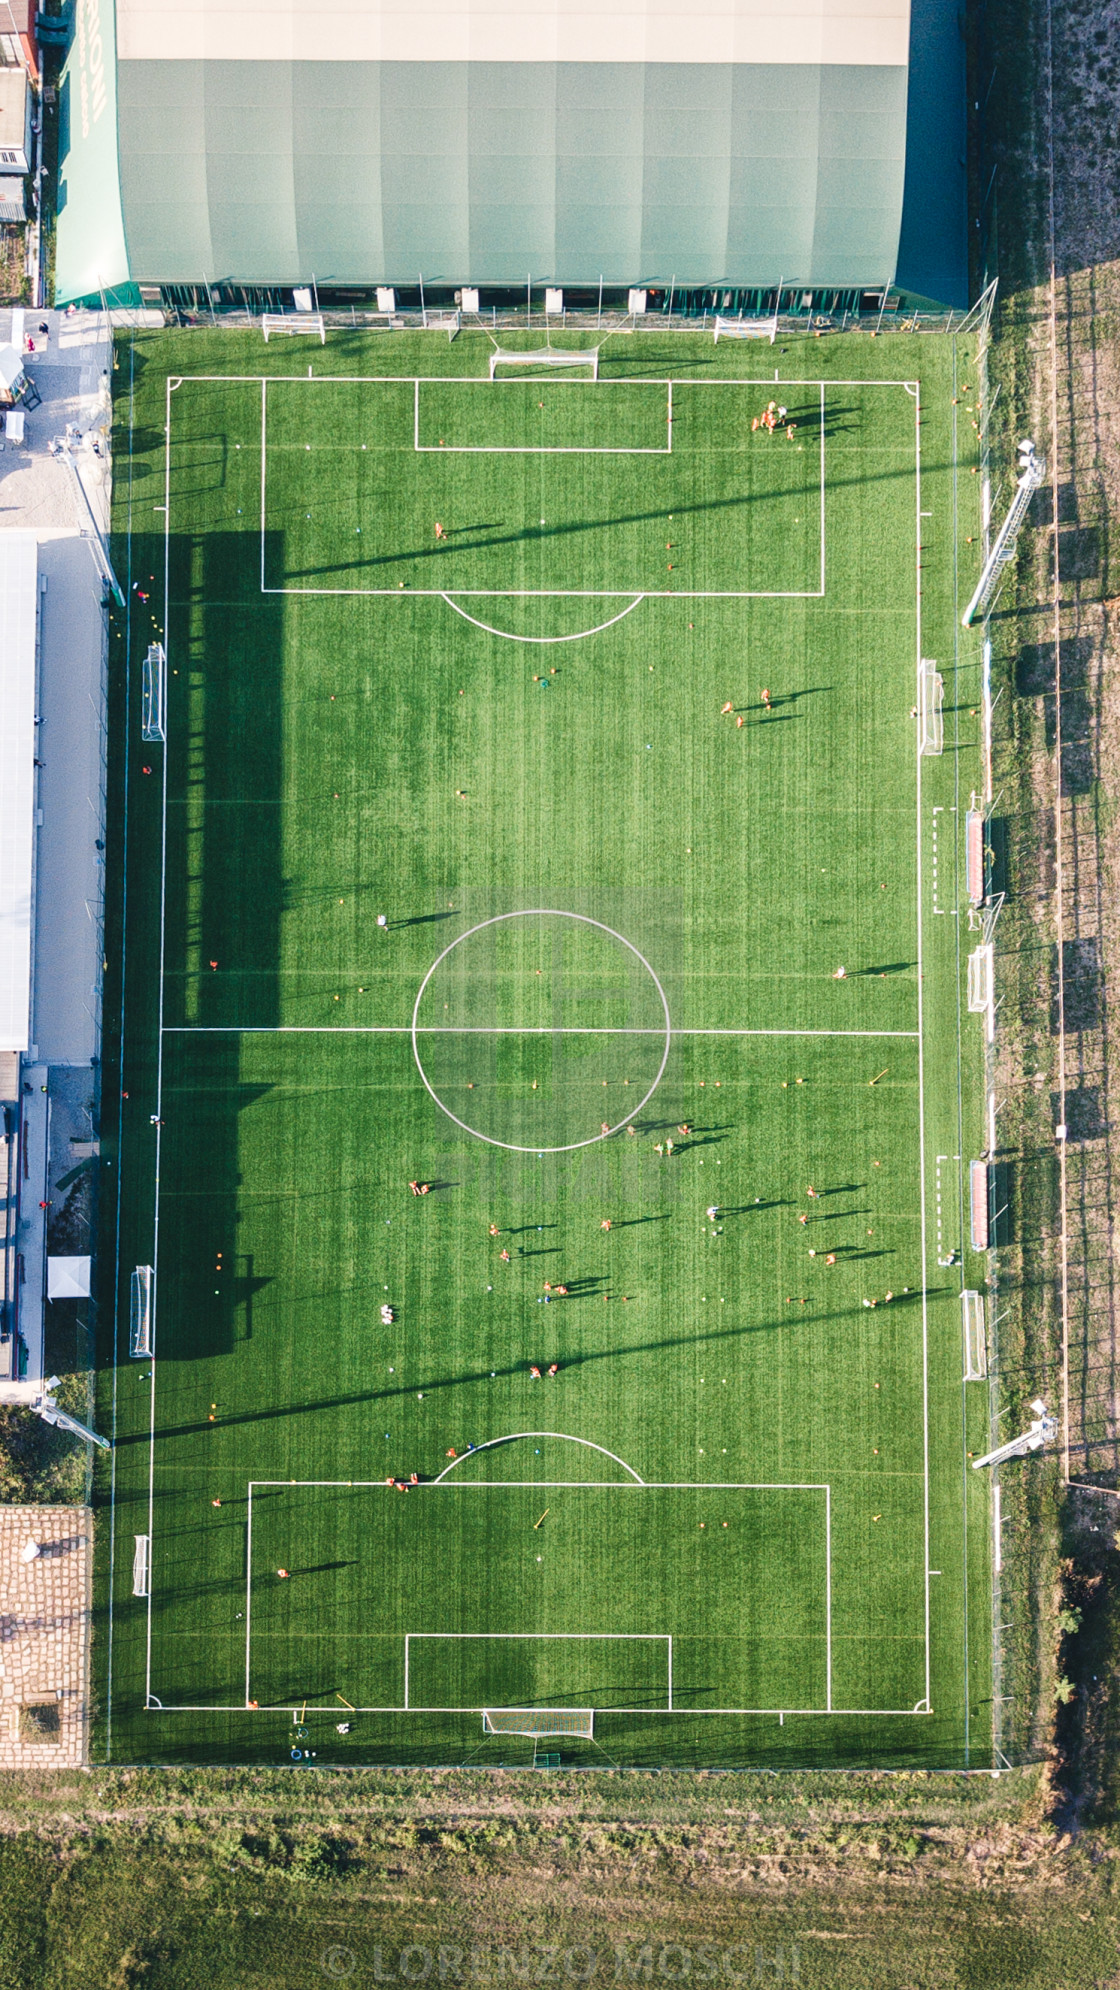 """Aerial view of real soccer pitch"" stock image"